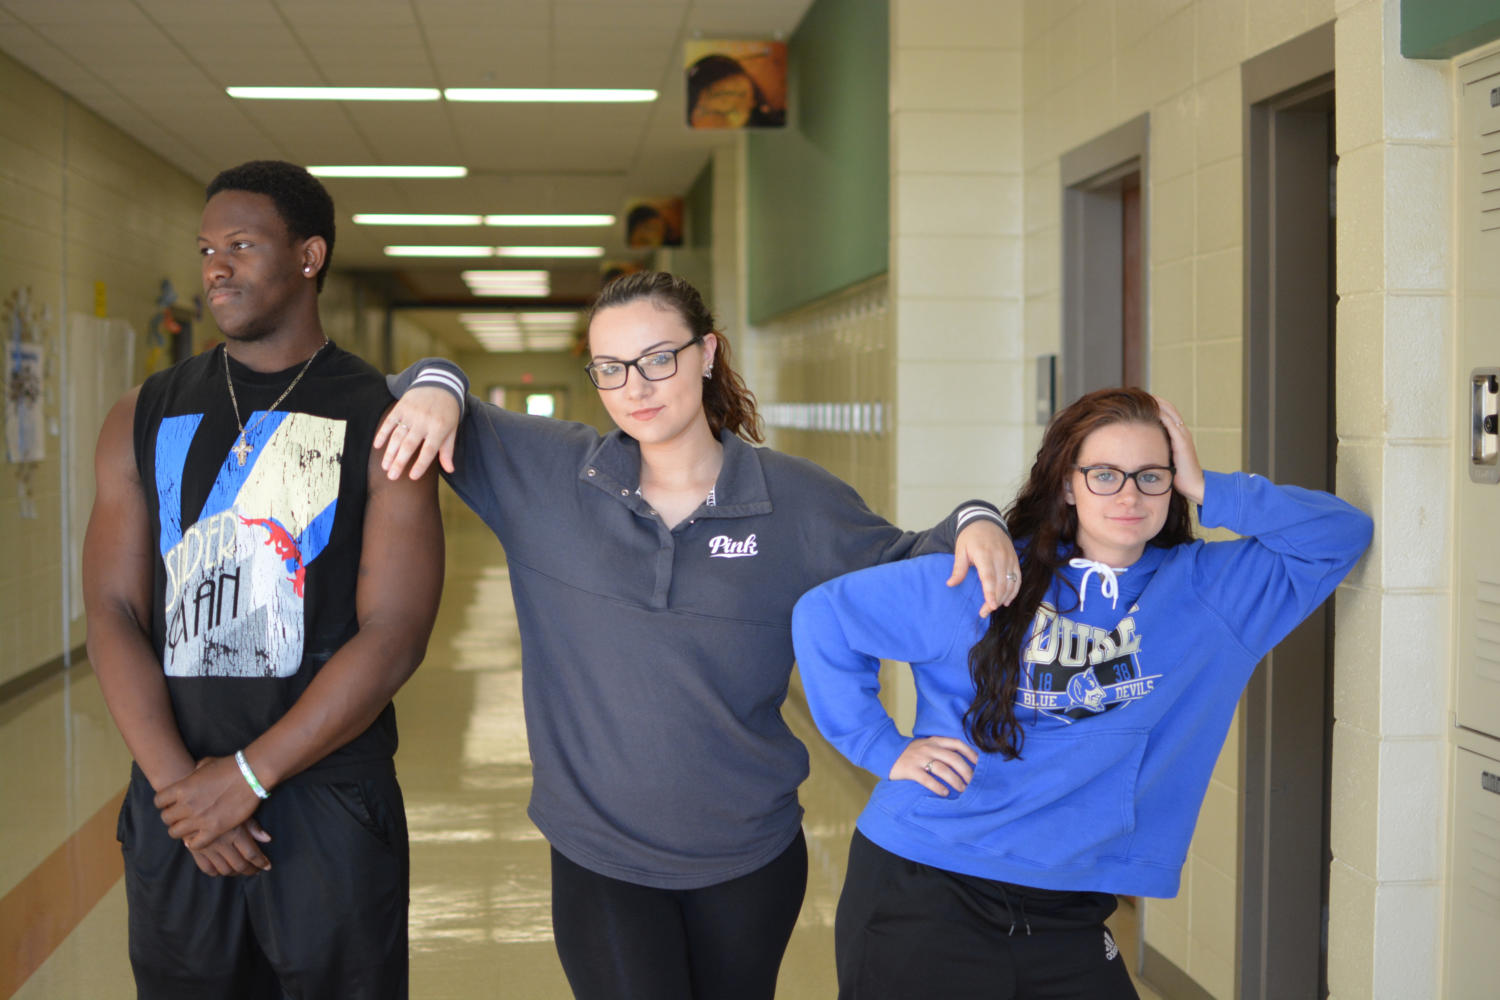 Senior Prowl members, from left to right, Tashaun Wallace, Taylor Mathis and Bailey Soden.